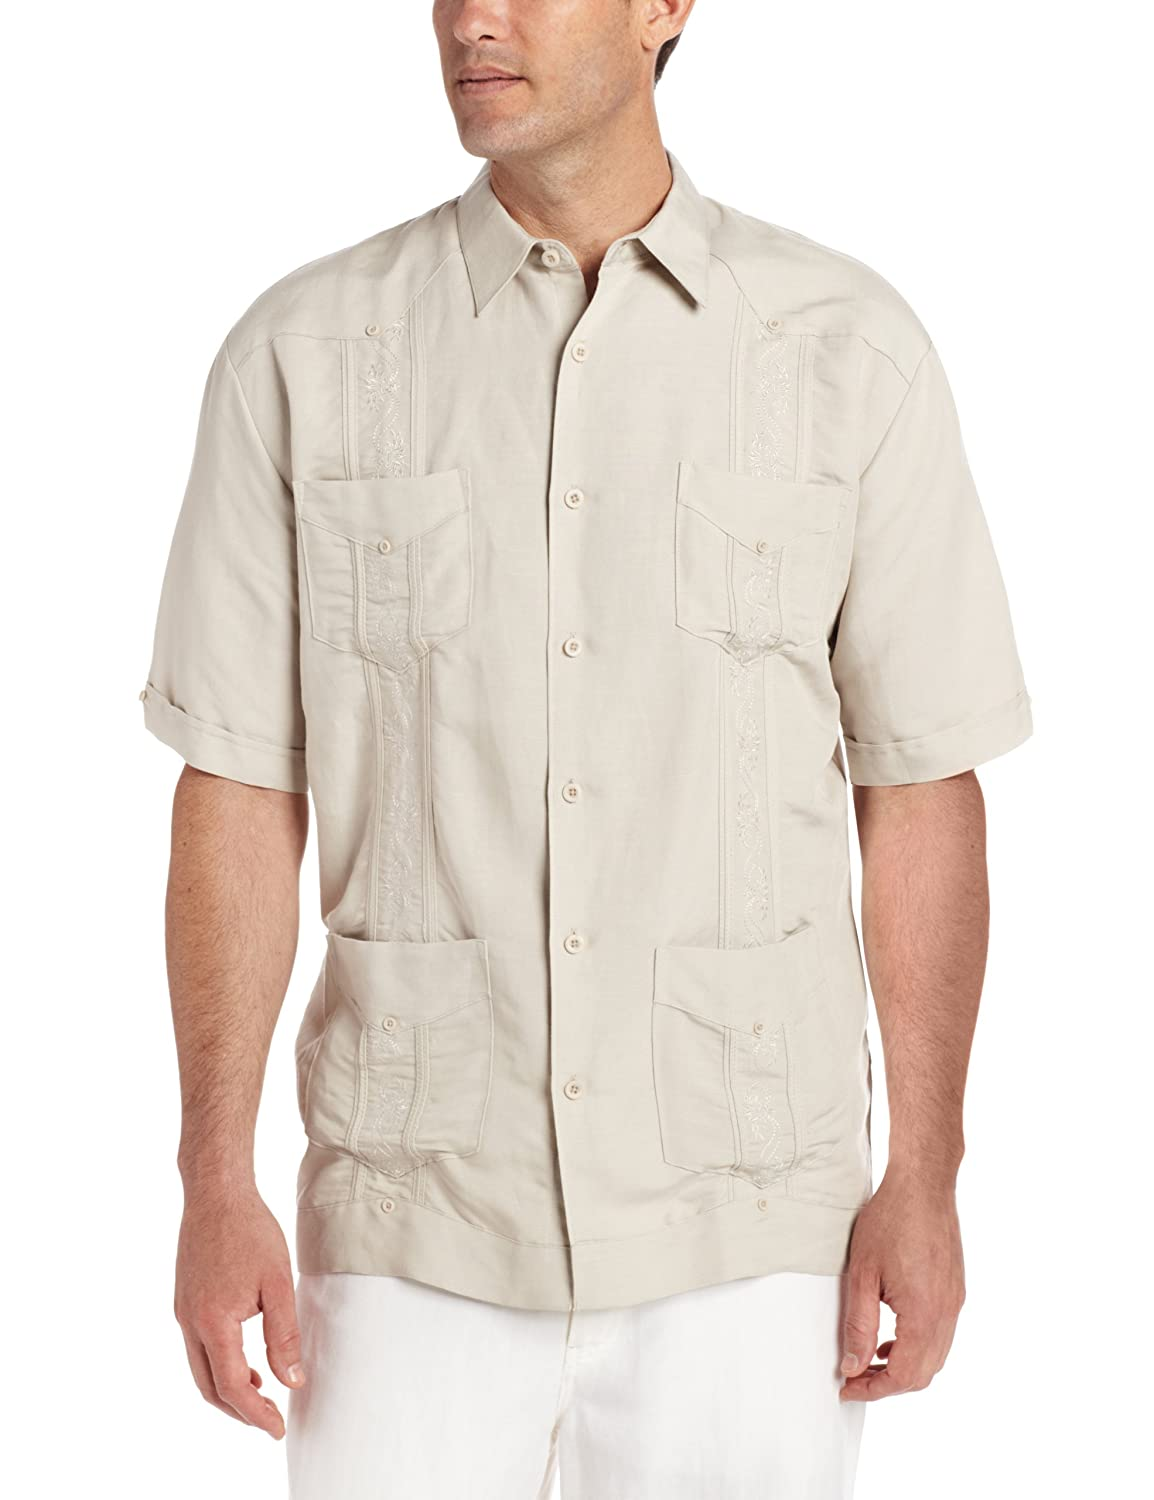 1930s Mens Shirts | Dress Shirts, Polo Shirts, Work Shirts Big-Tall Short Sleeve Embroidered Ramie $39.95 AT vintagedancer.com